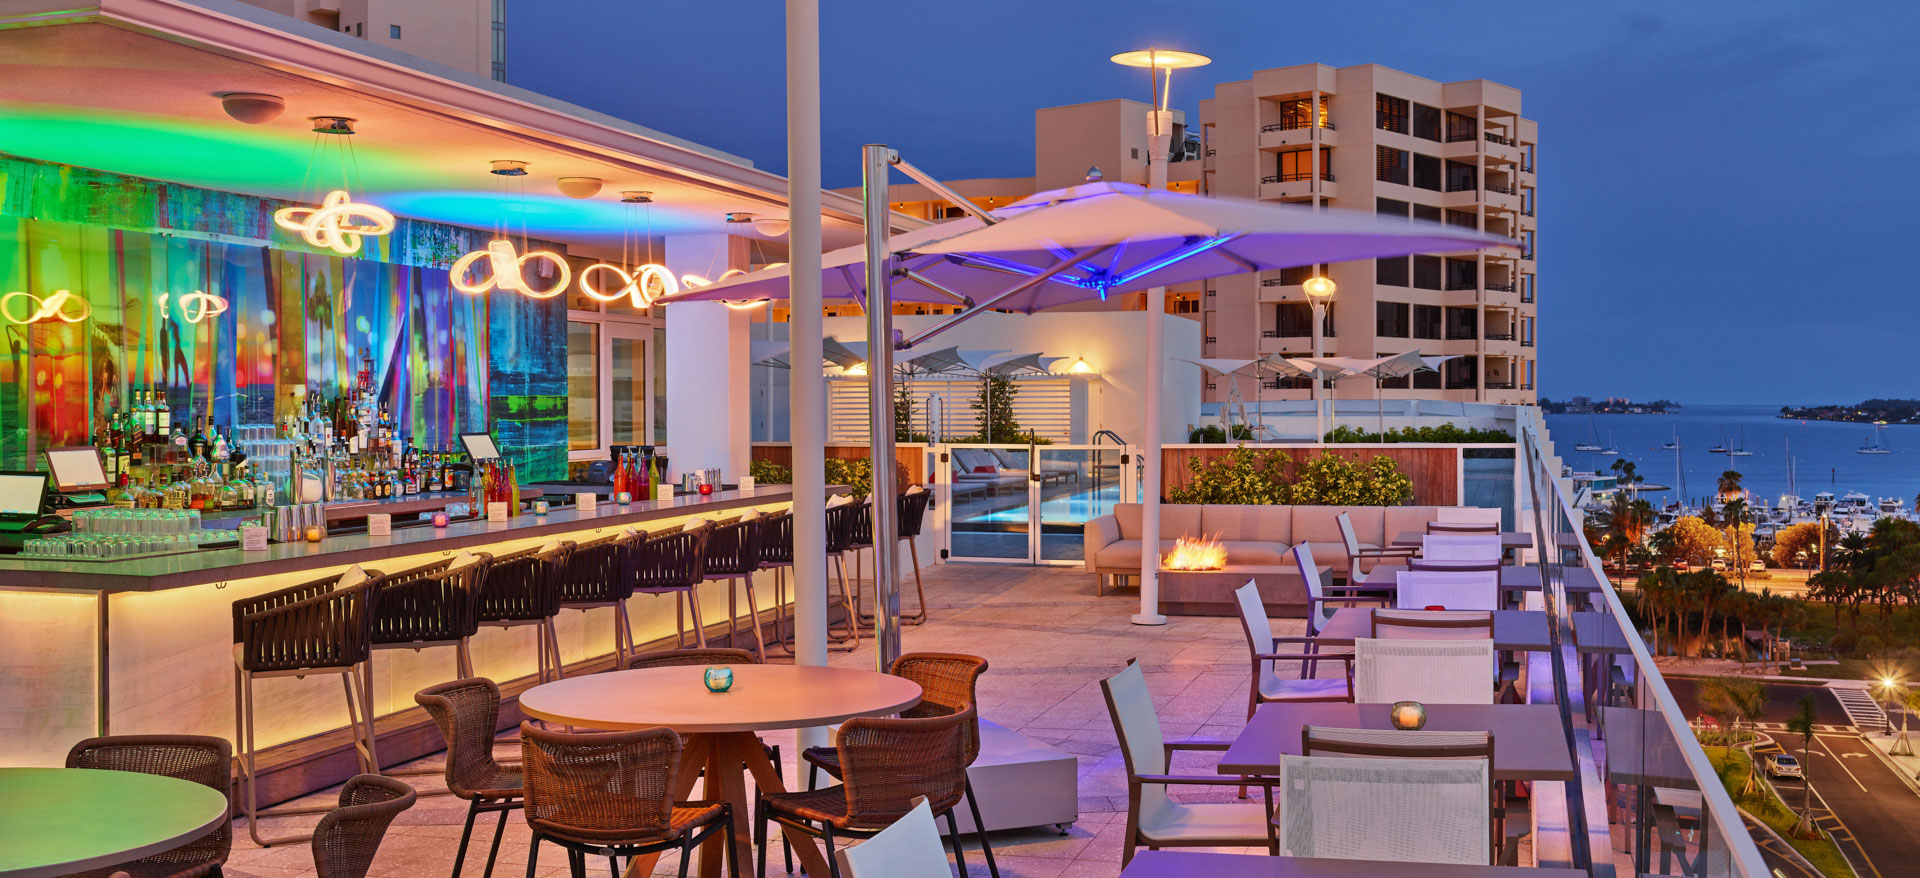 Perspective Rooftop Pool Bar of Art Ovation Hotel, Autograph Collection at Sarasota, Florida